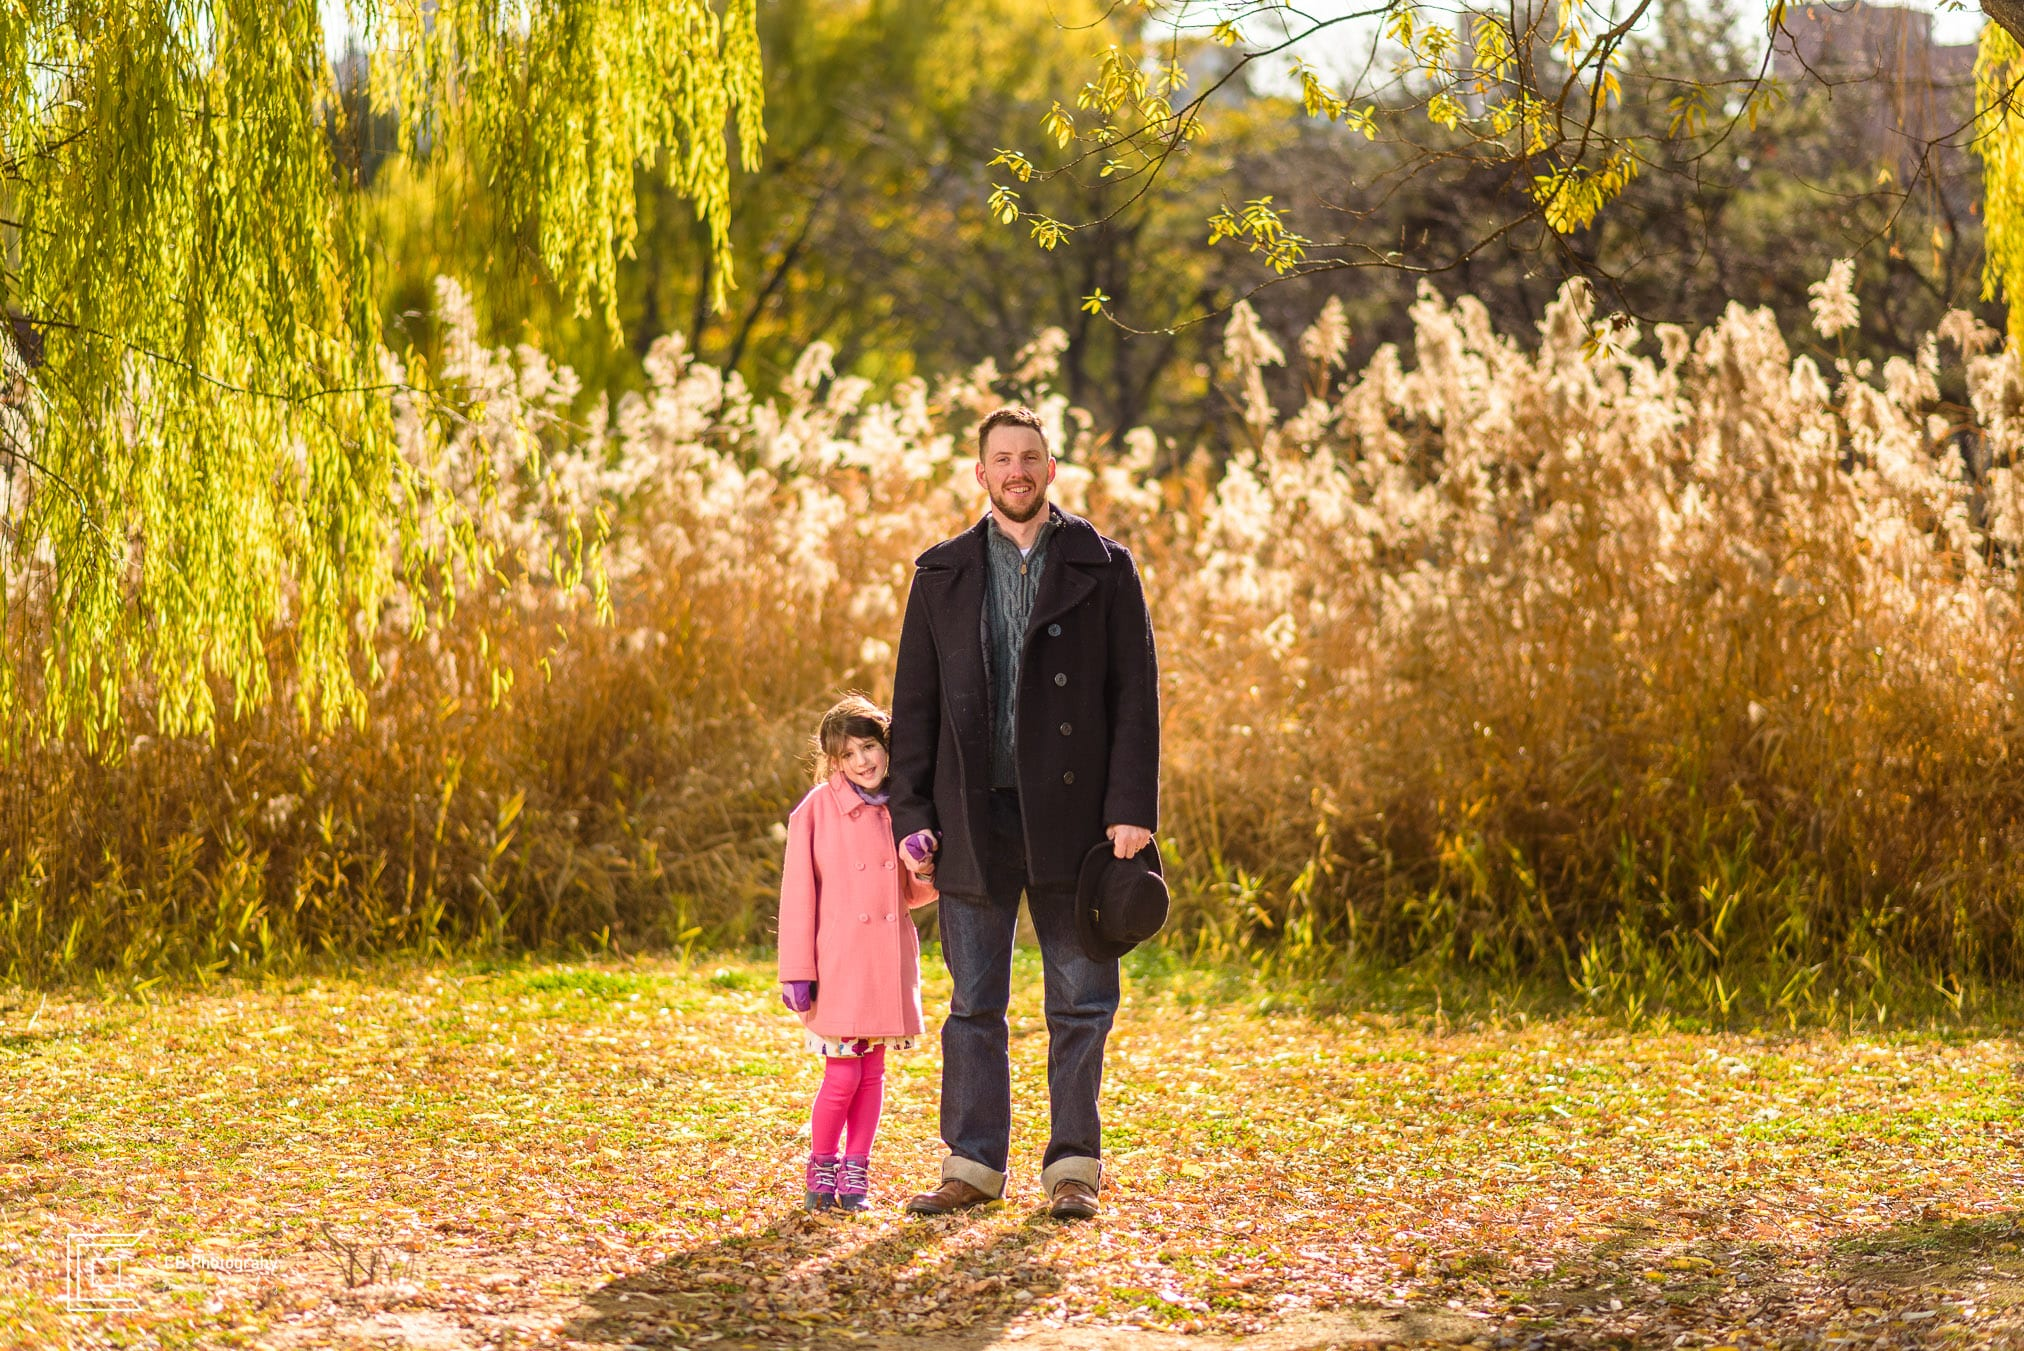 Father and daughter portrait, image taken b the Tokyo Photographer Cristian Bucur